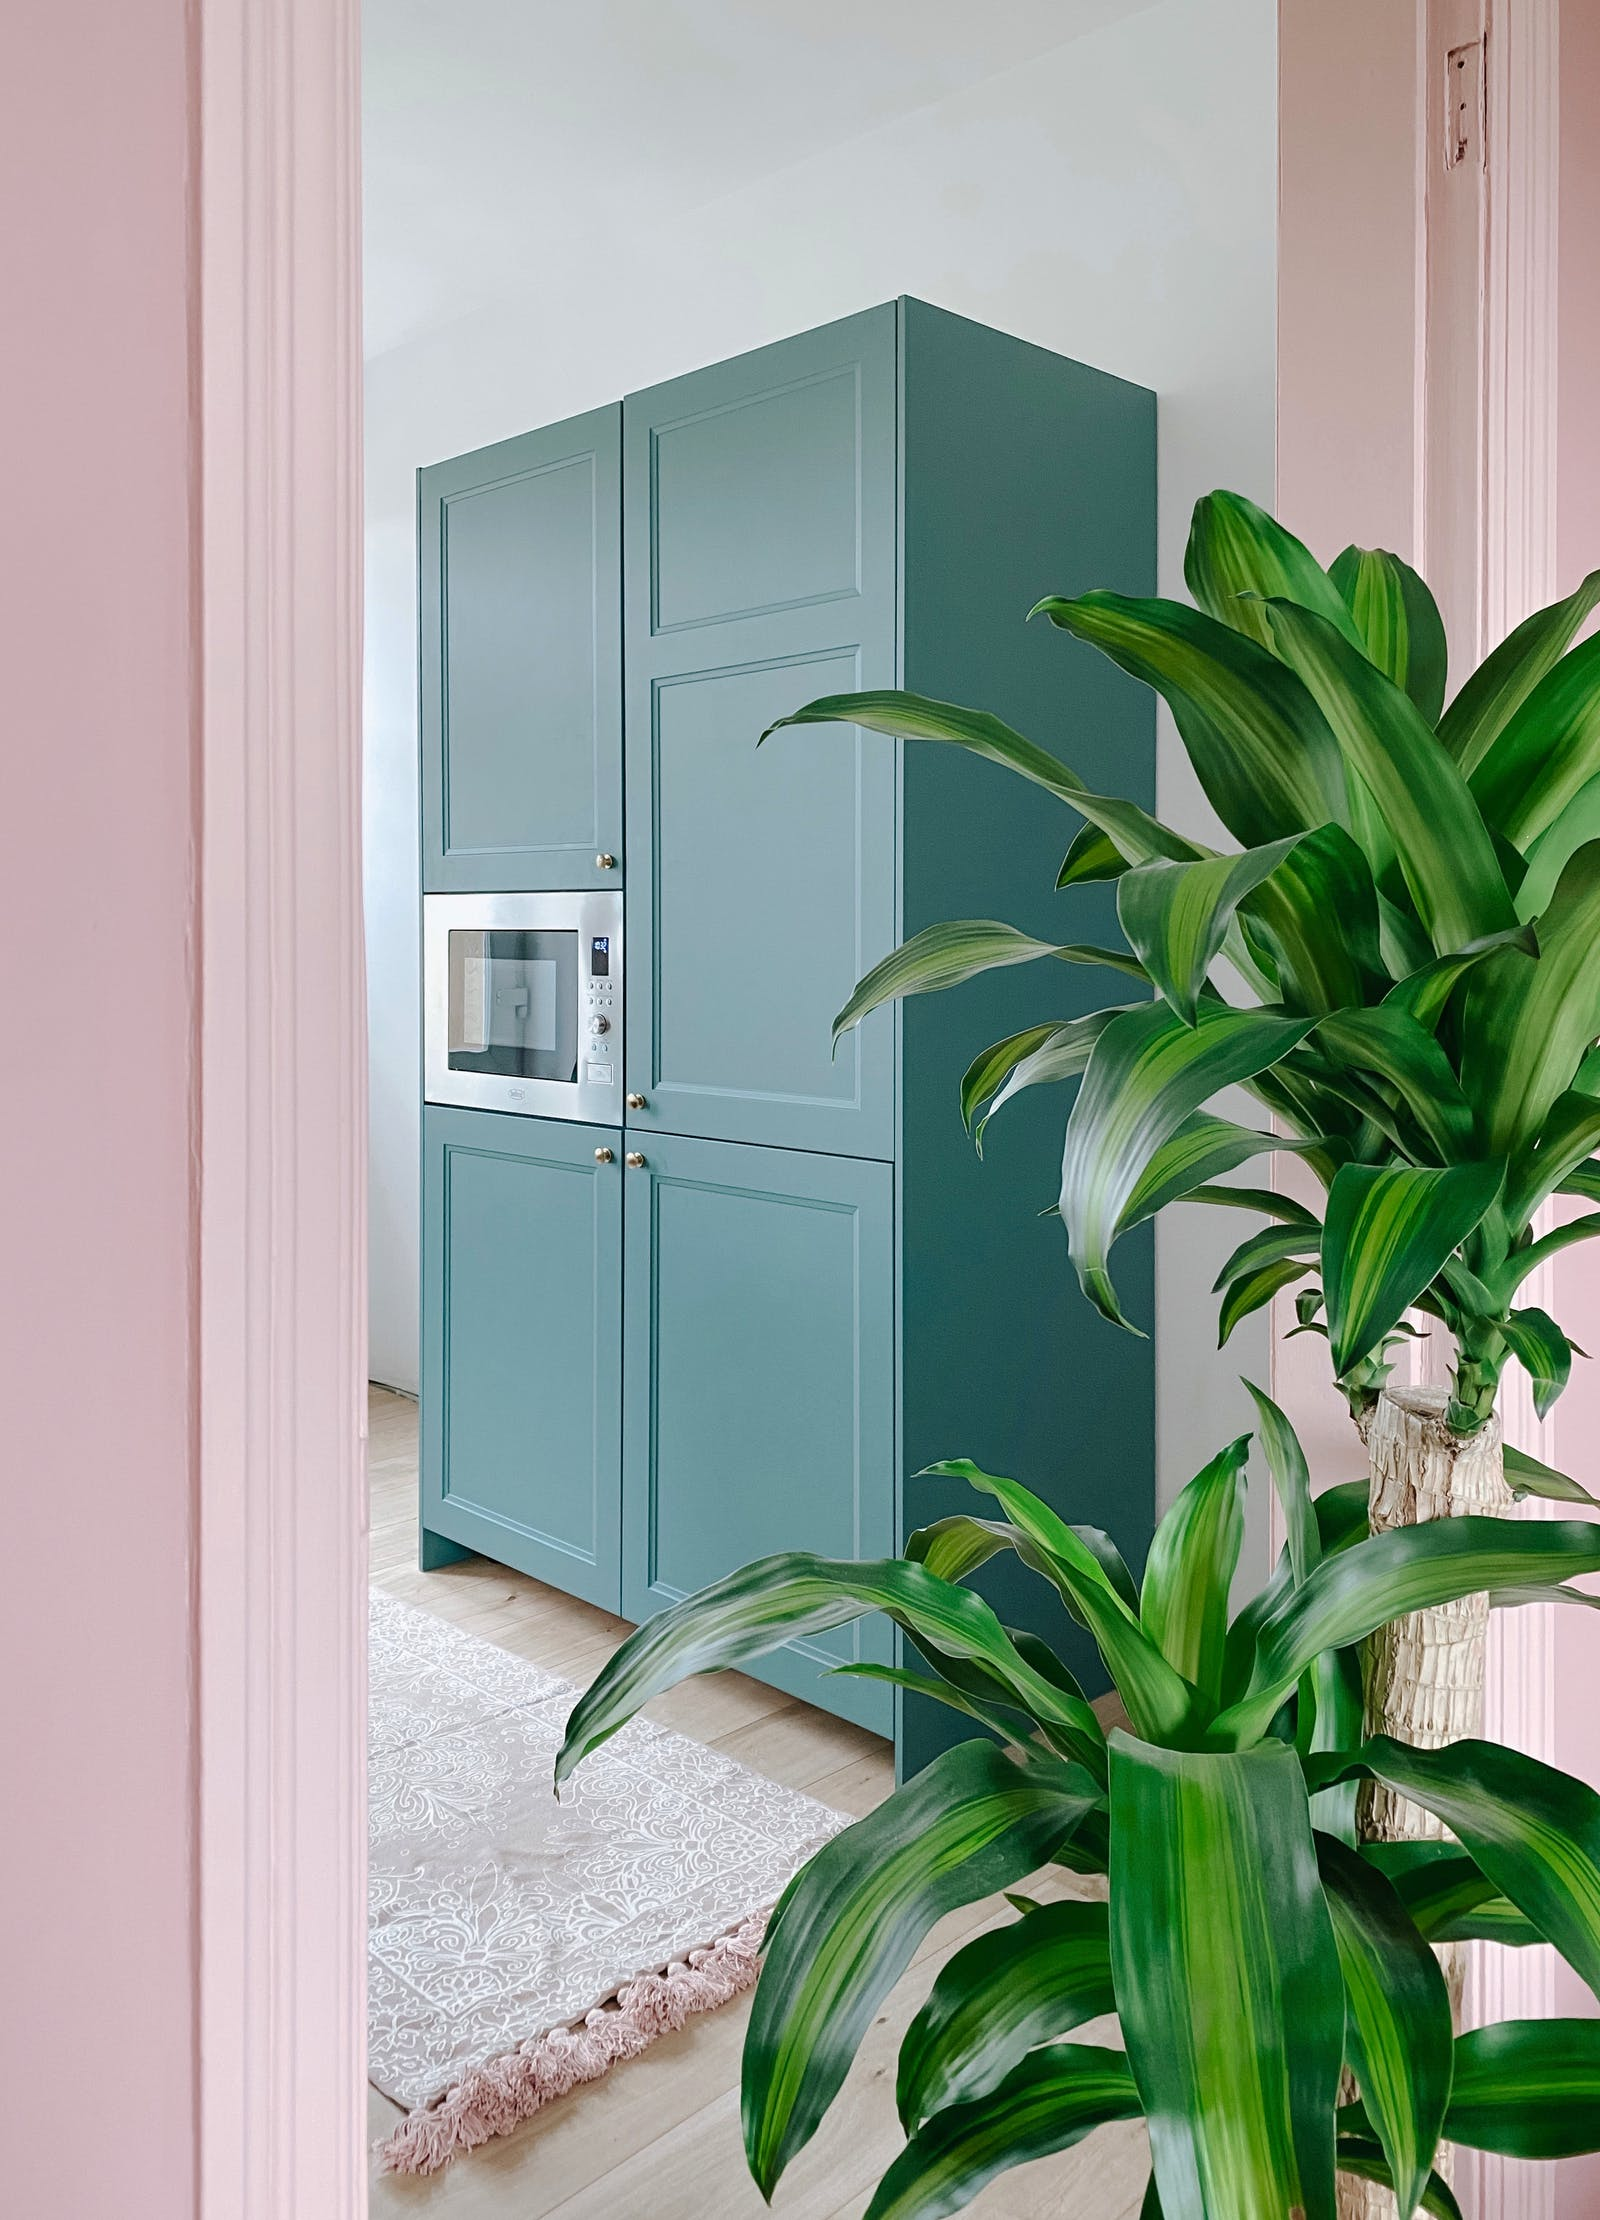 Turquoise green kitchen cabinets in a pink doorway